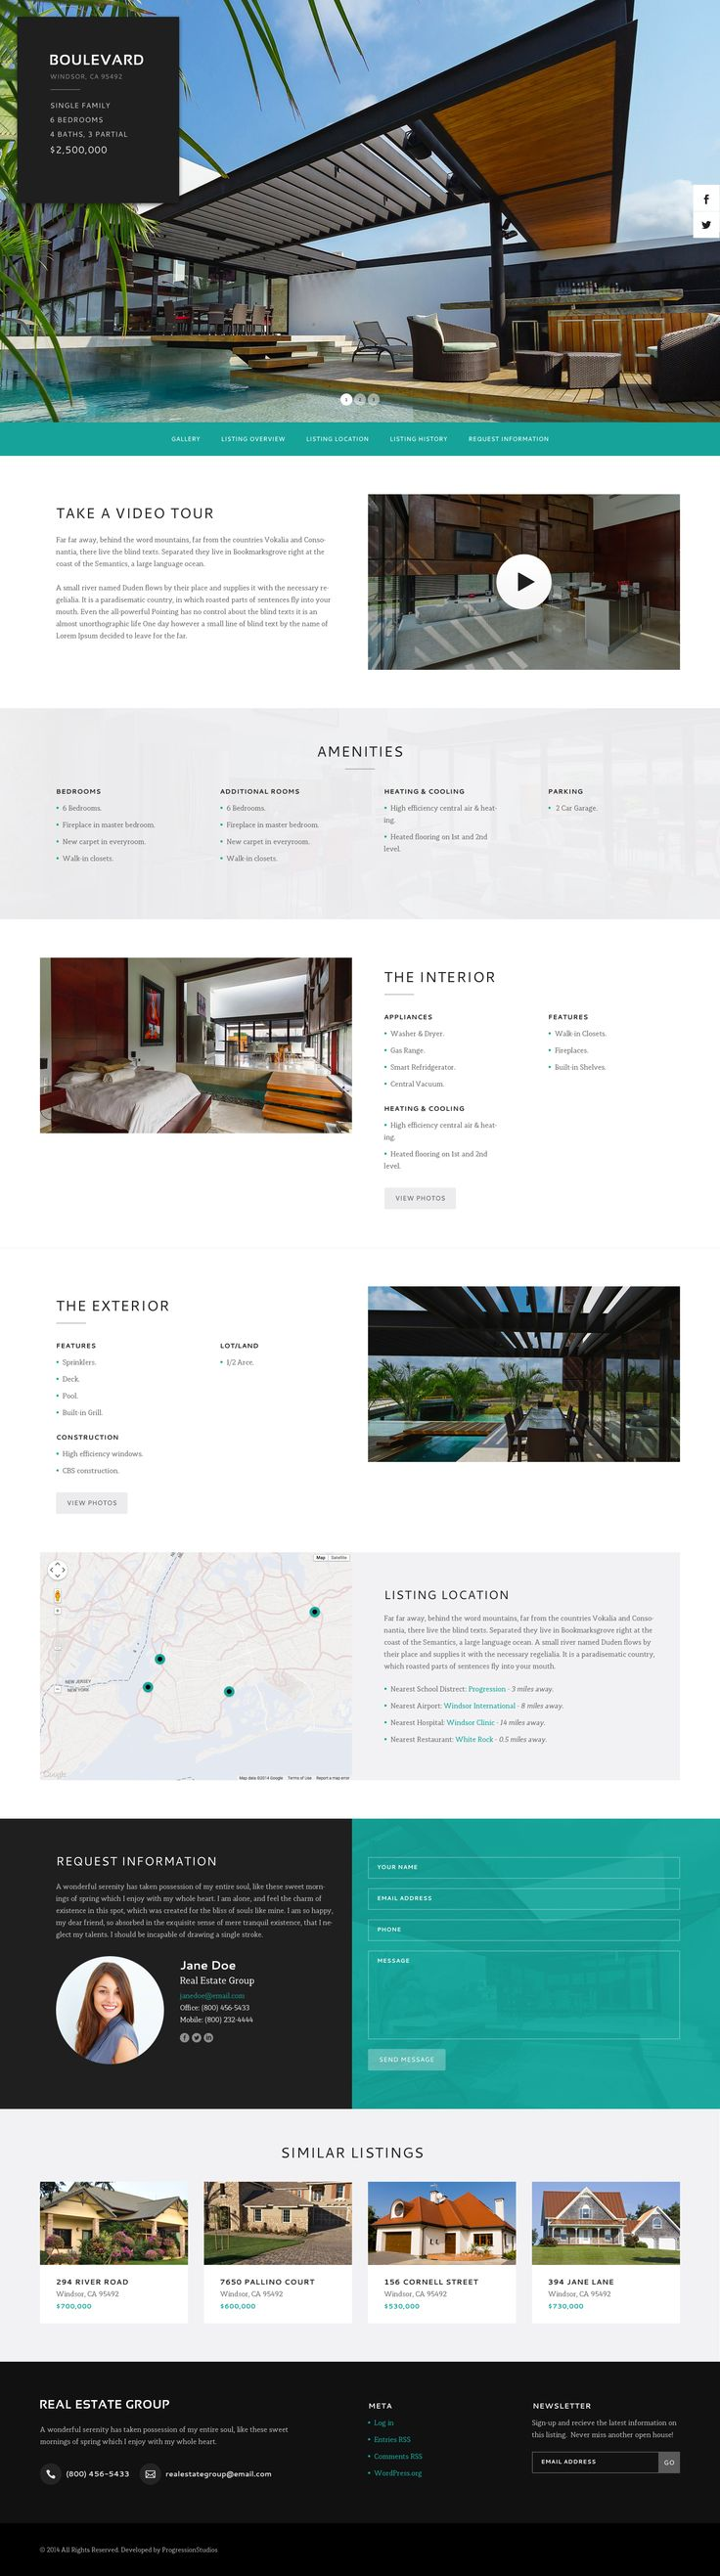 Boulevard Property Listing Page, by Matt on Dribbble.